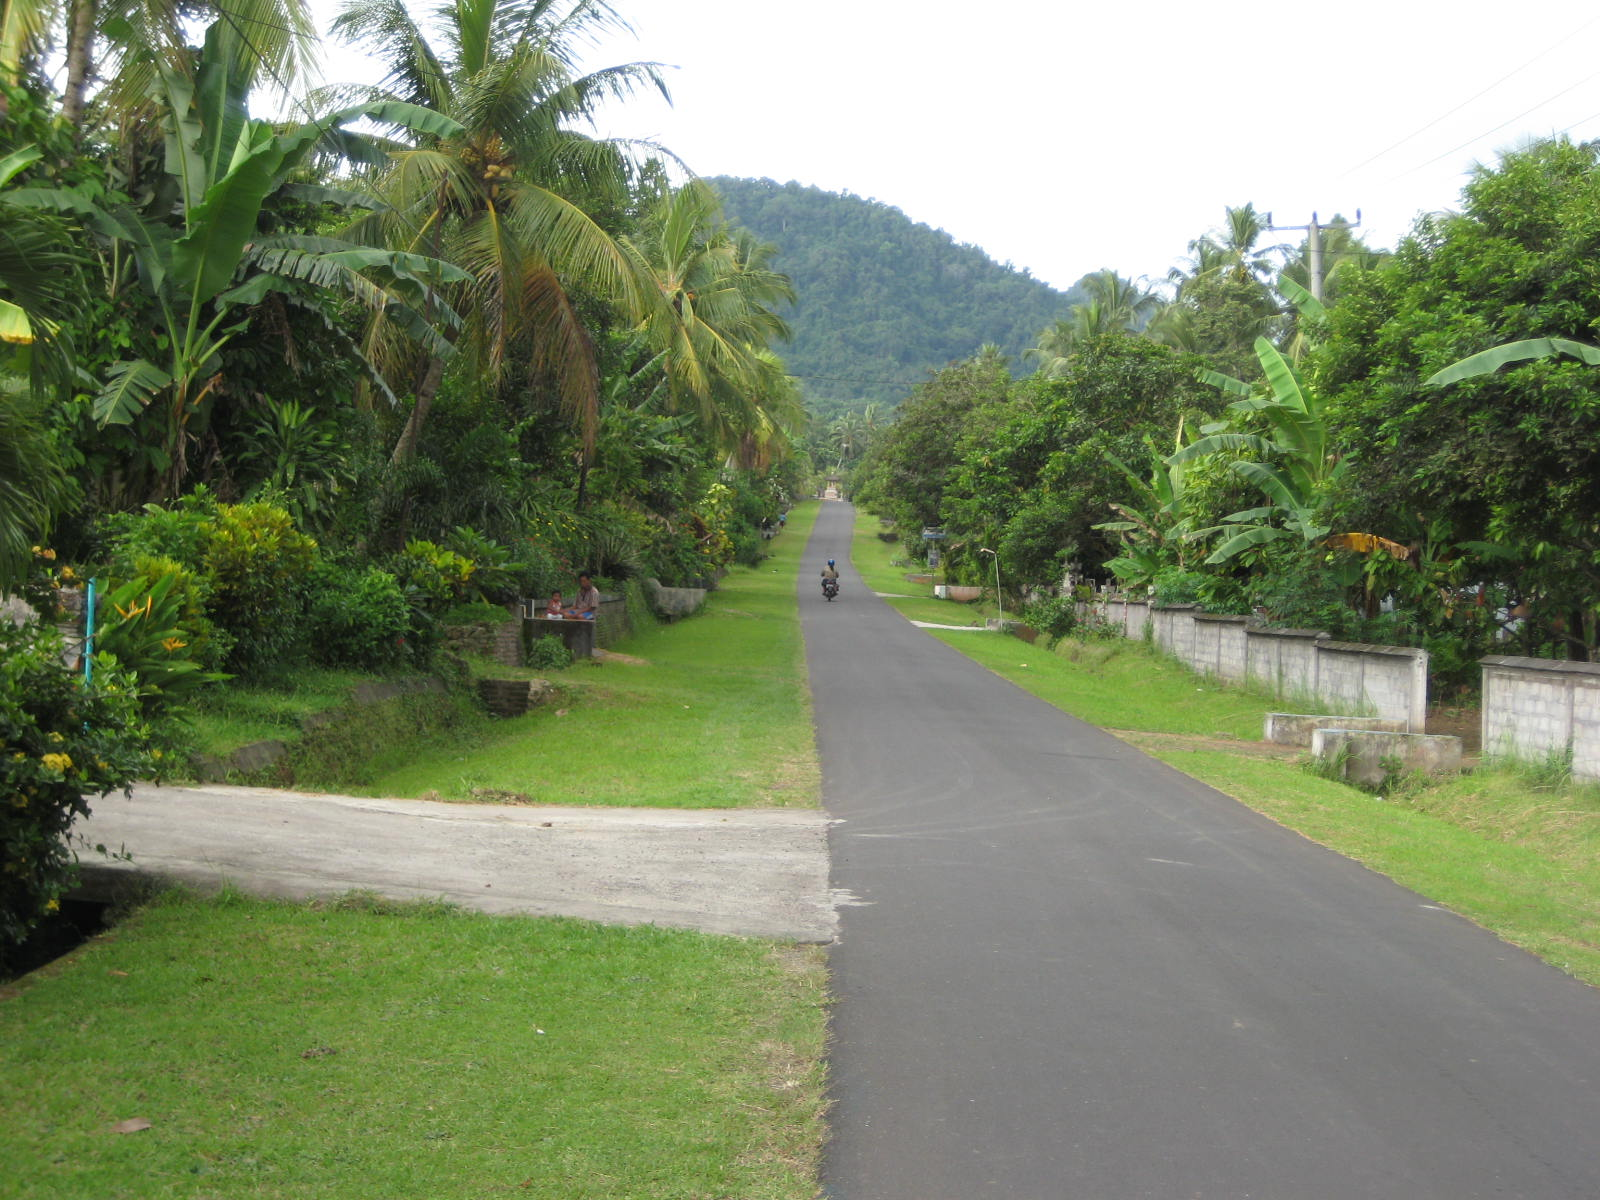 The road in Belimbingsari